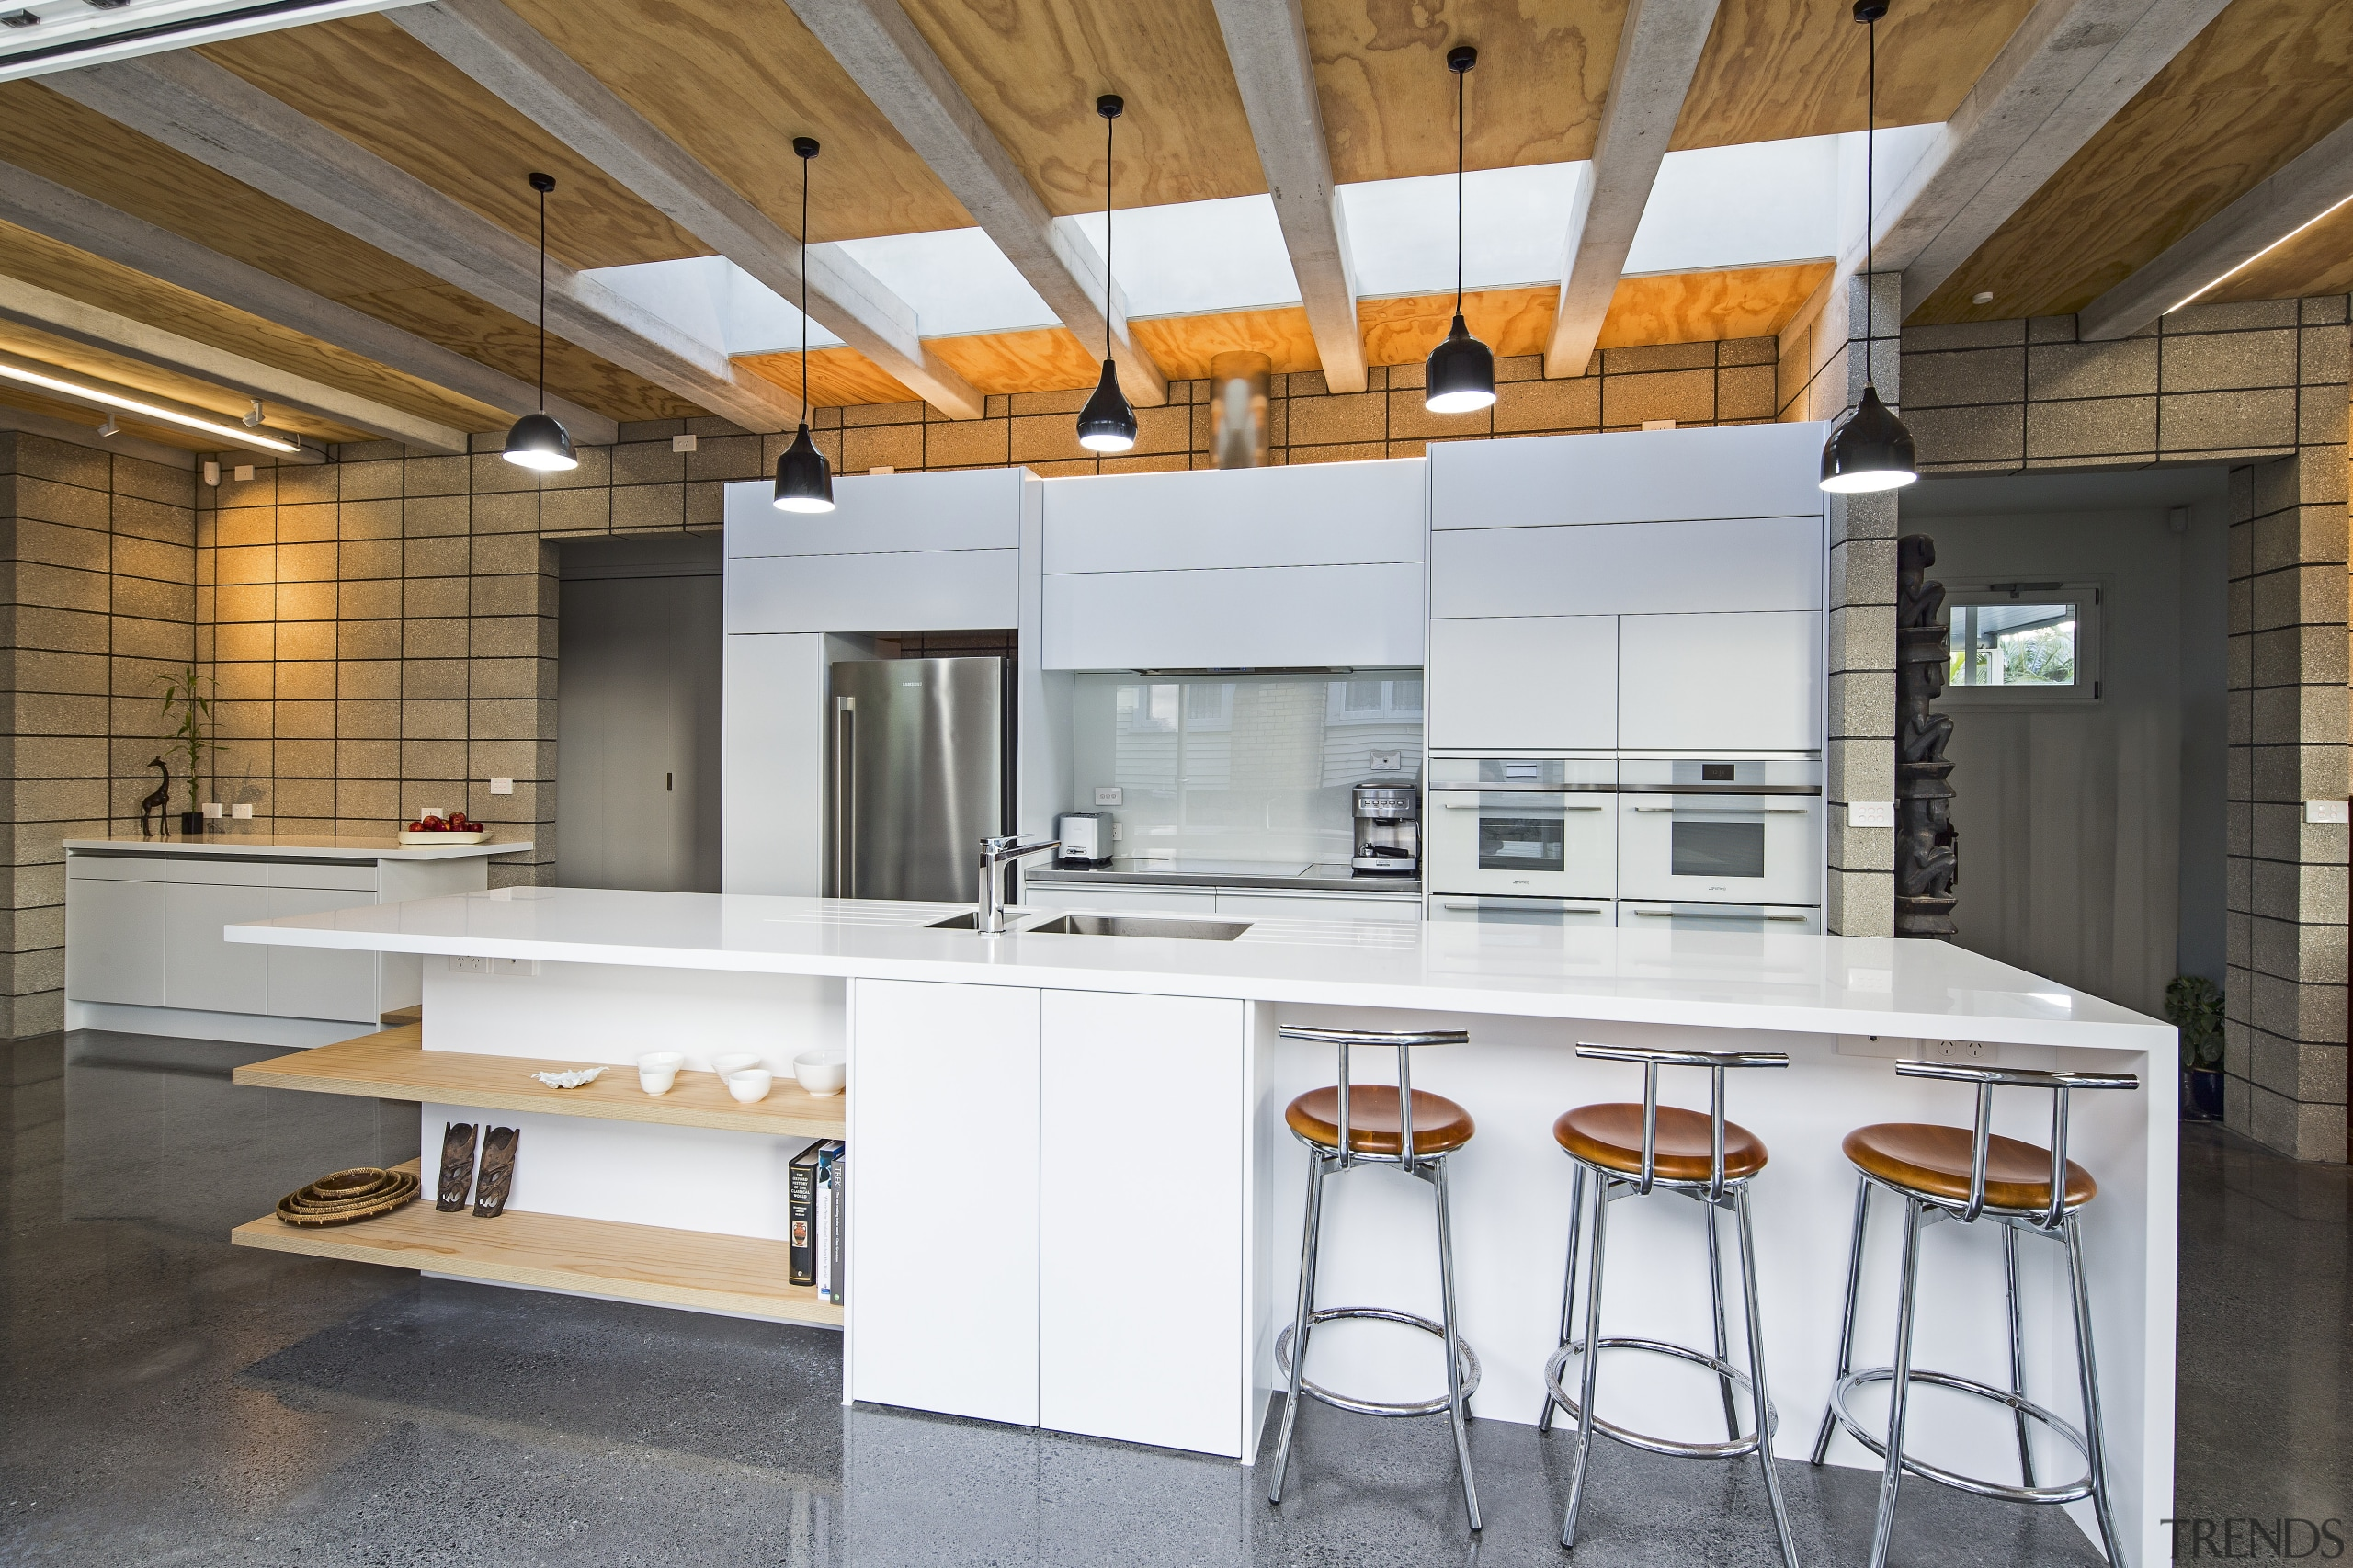 The beamed ceiling and long skylight give a architecture, ceiling, countertop, house, interior design, kitchen, real estate, white